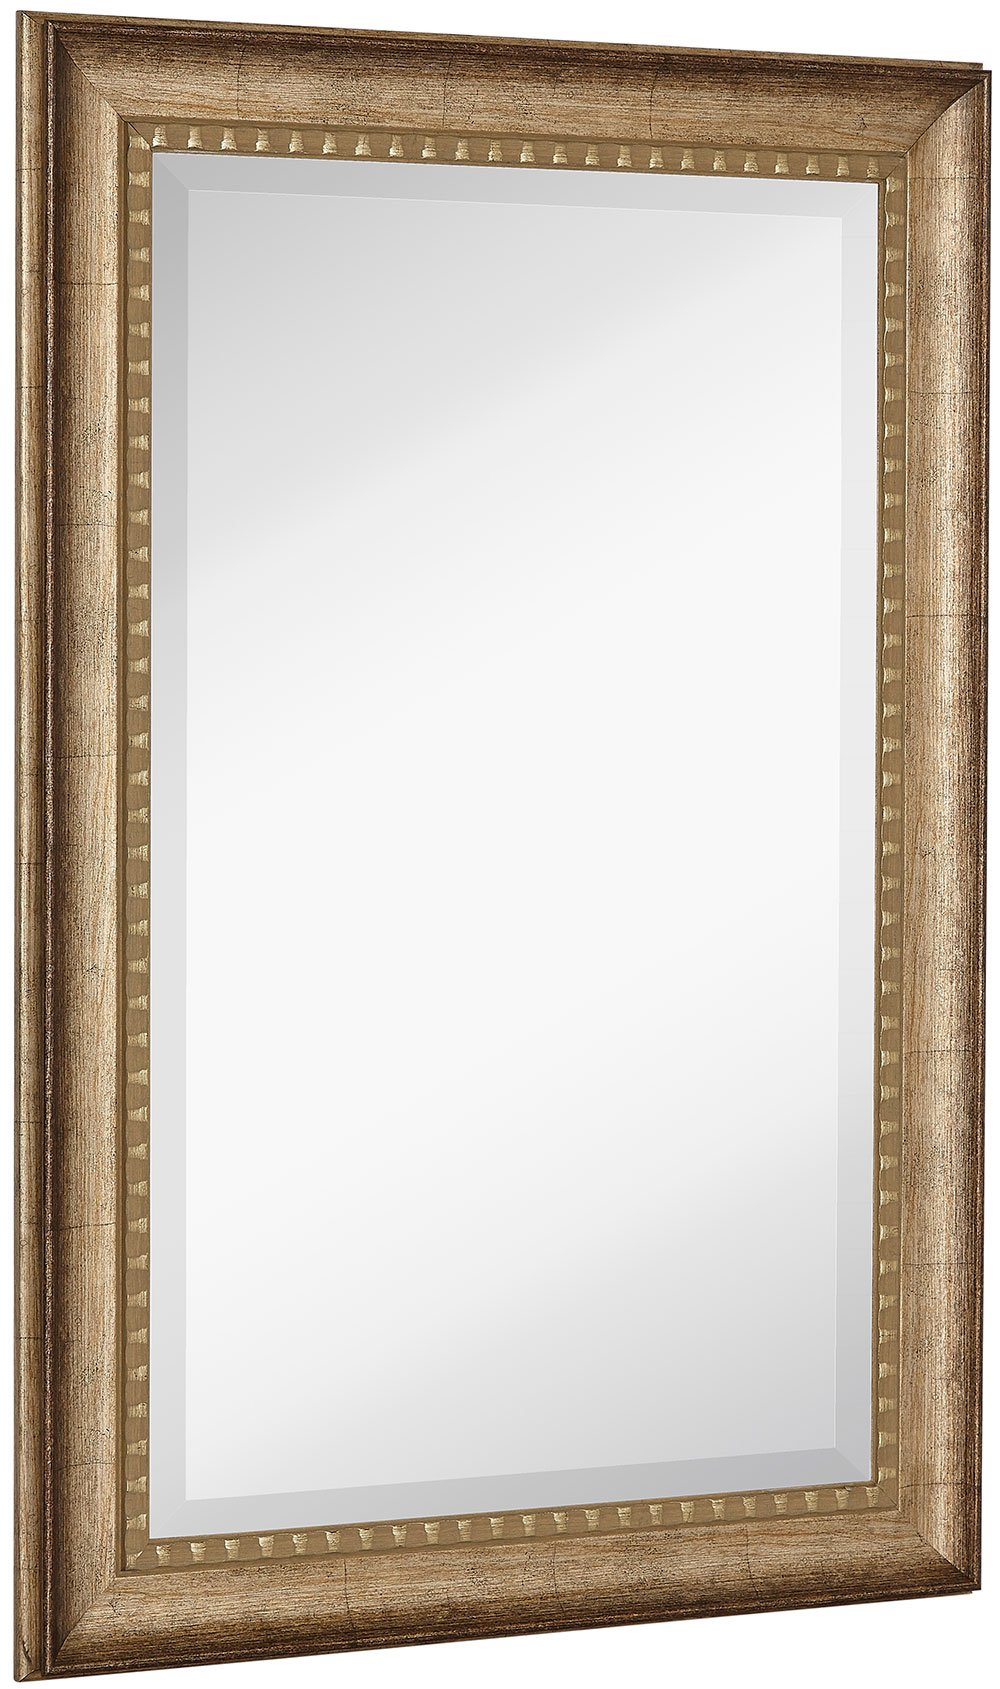 NEW Large Transitional Rectangle Wall Mirror | Luxury Designer Accented Frame | Solid Beveled Glass | Made In USA | Vanity, Bedroom, or Bathroom | Hangs Horizontal or Vertical